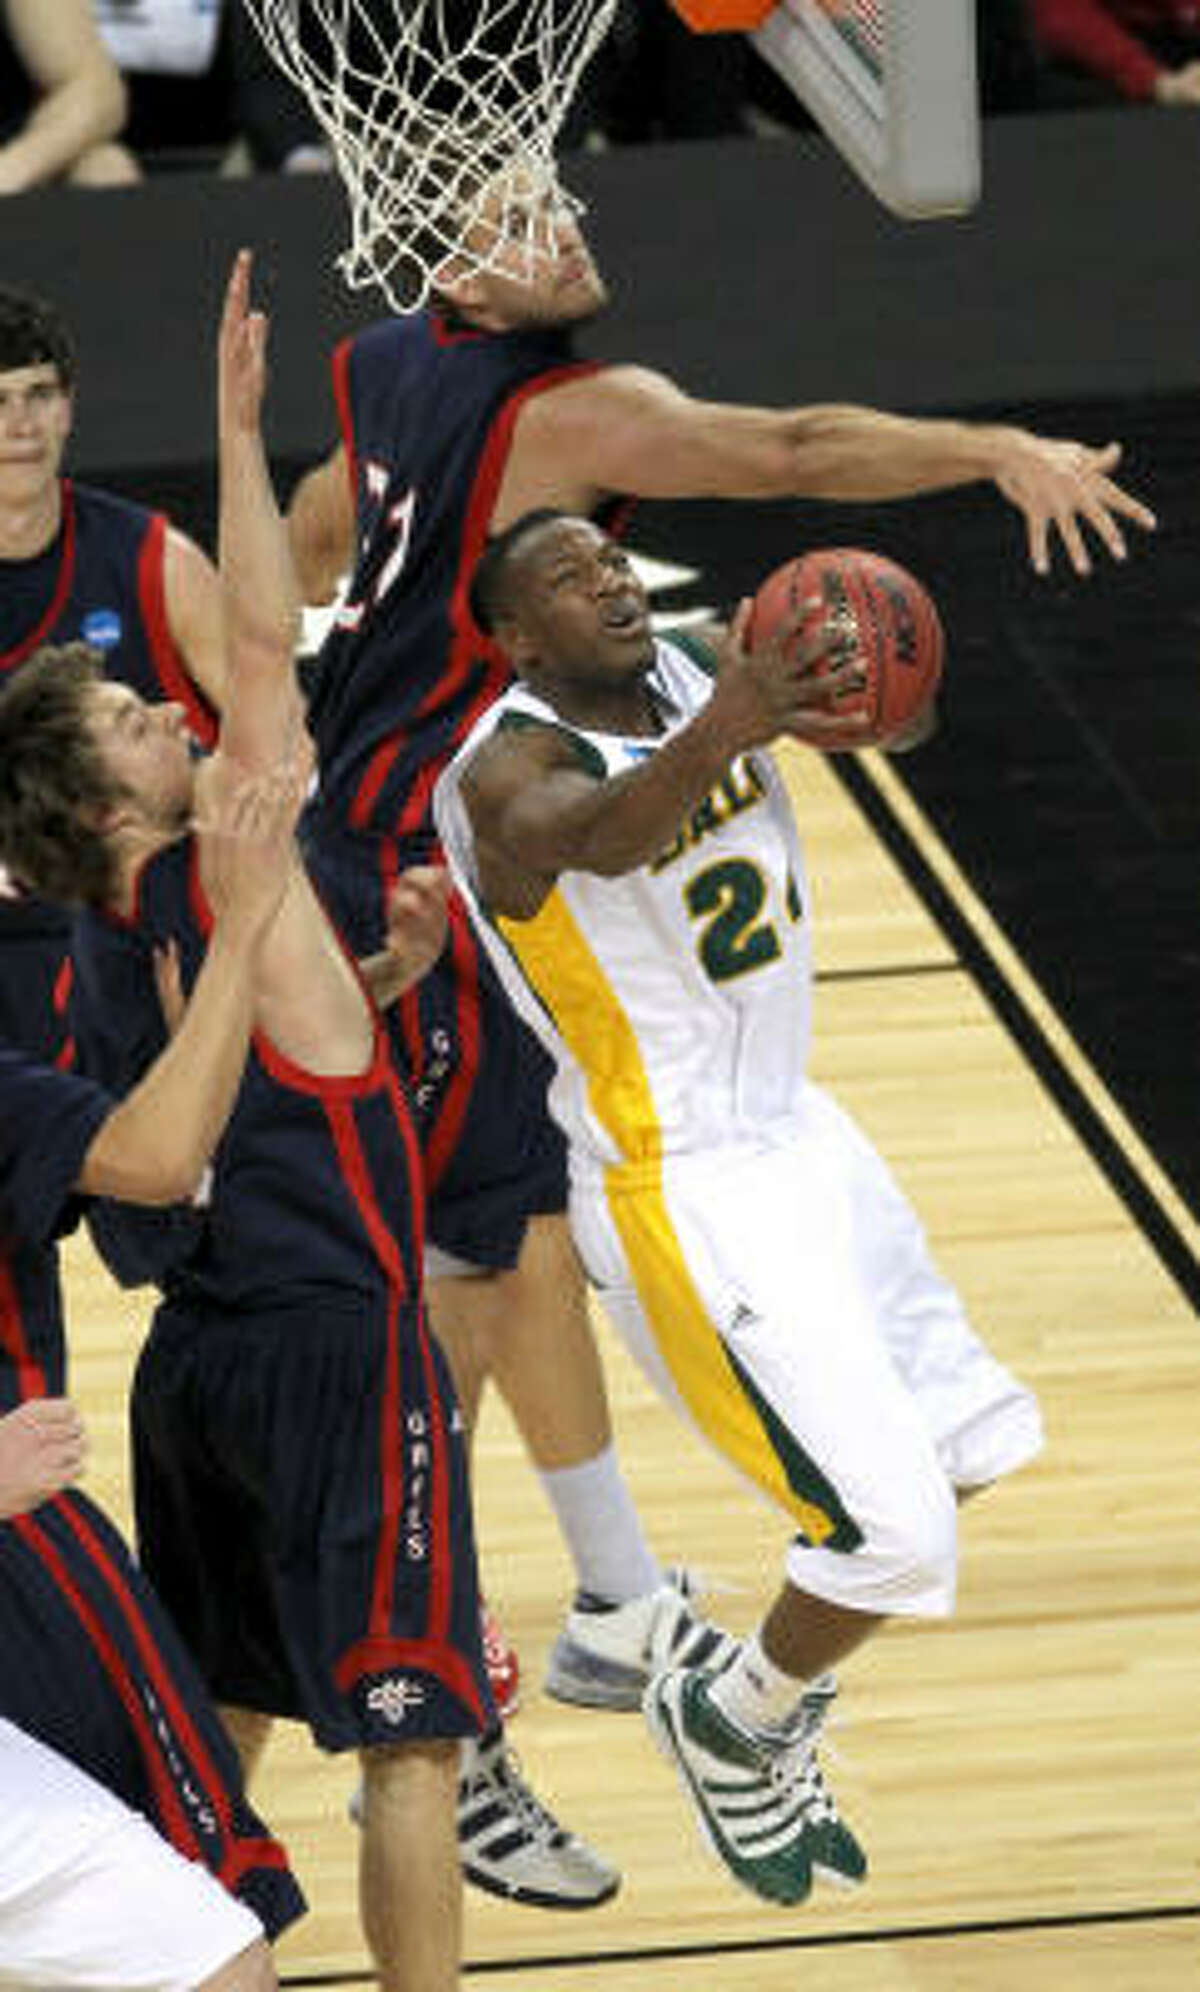 Baylor guard LaceDarius Dunn goes under the basket for a reverse layup.